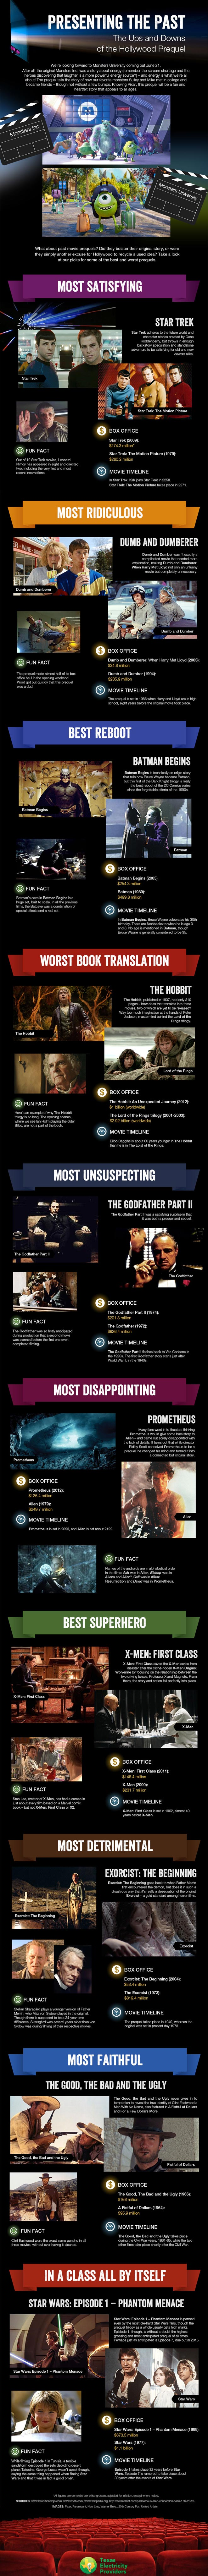 Hollywood Prequels-Infographic